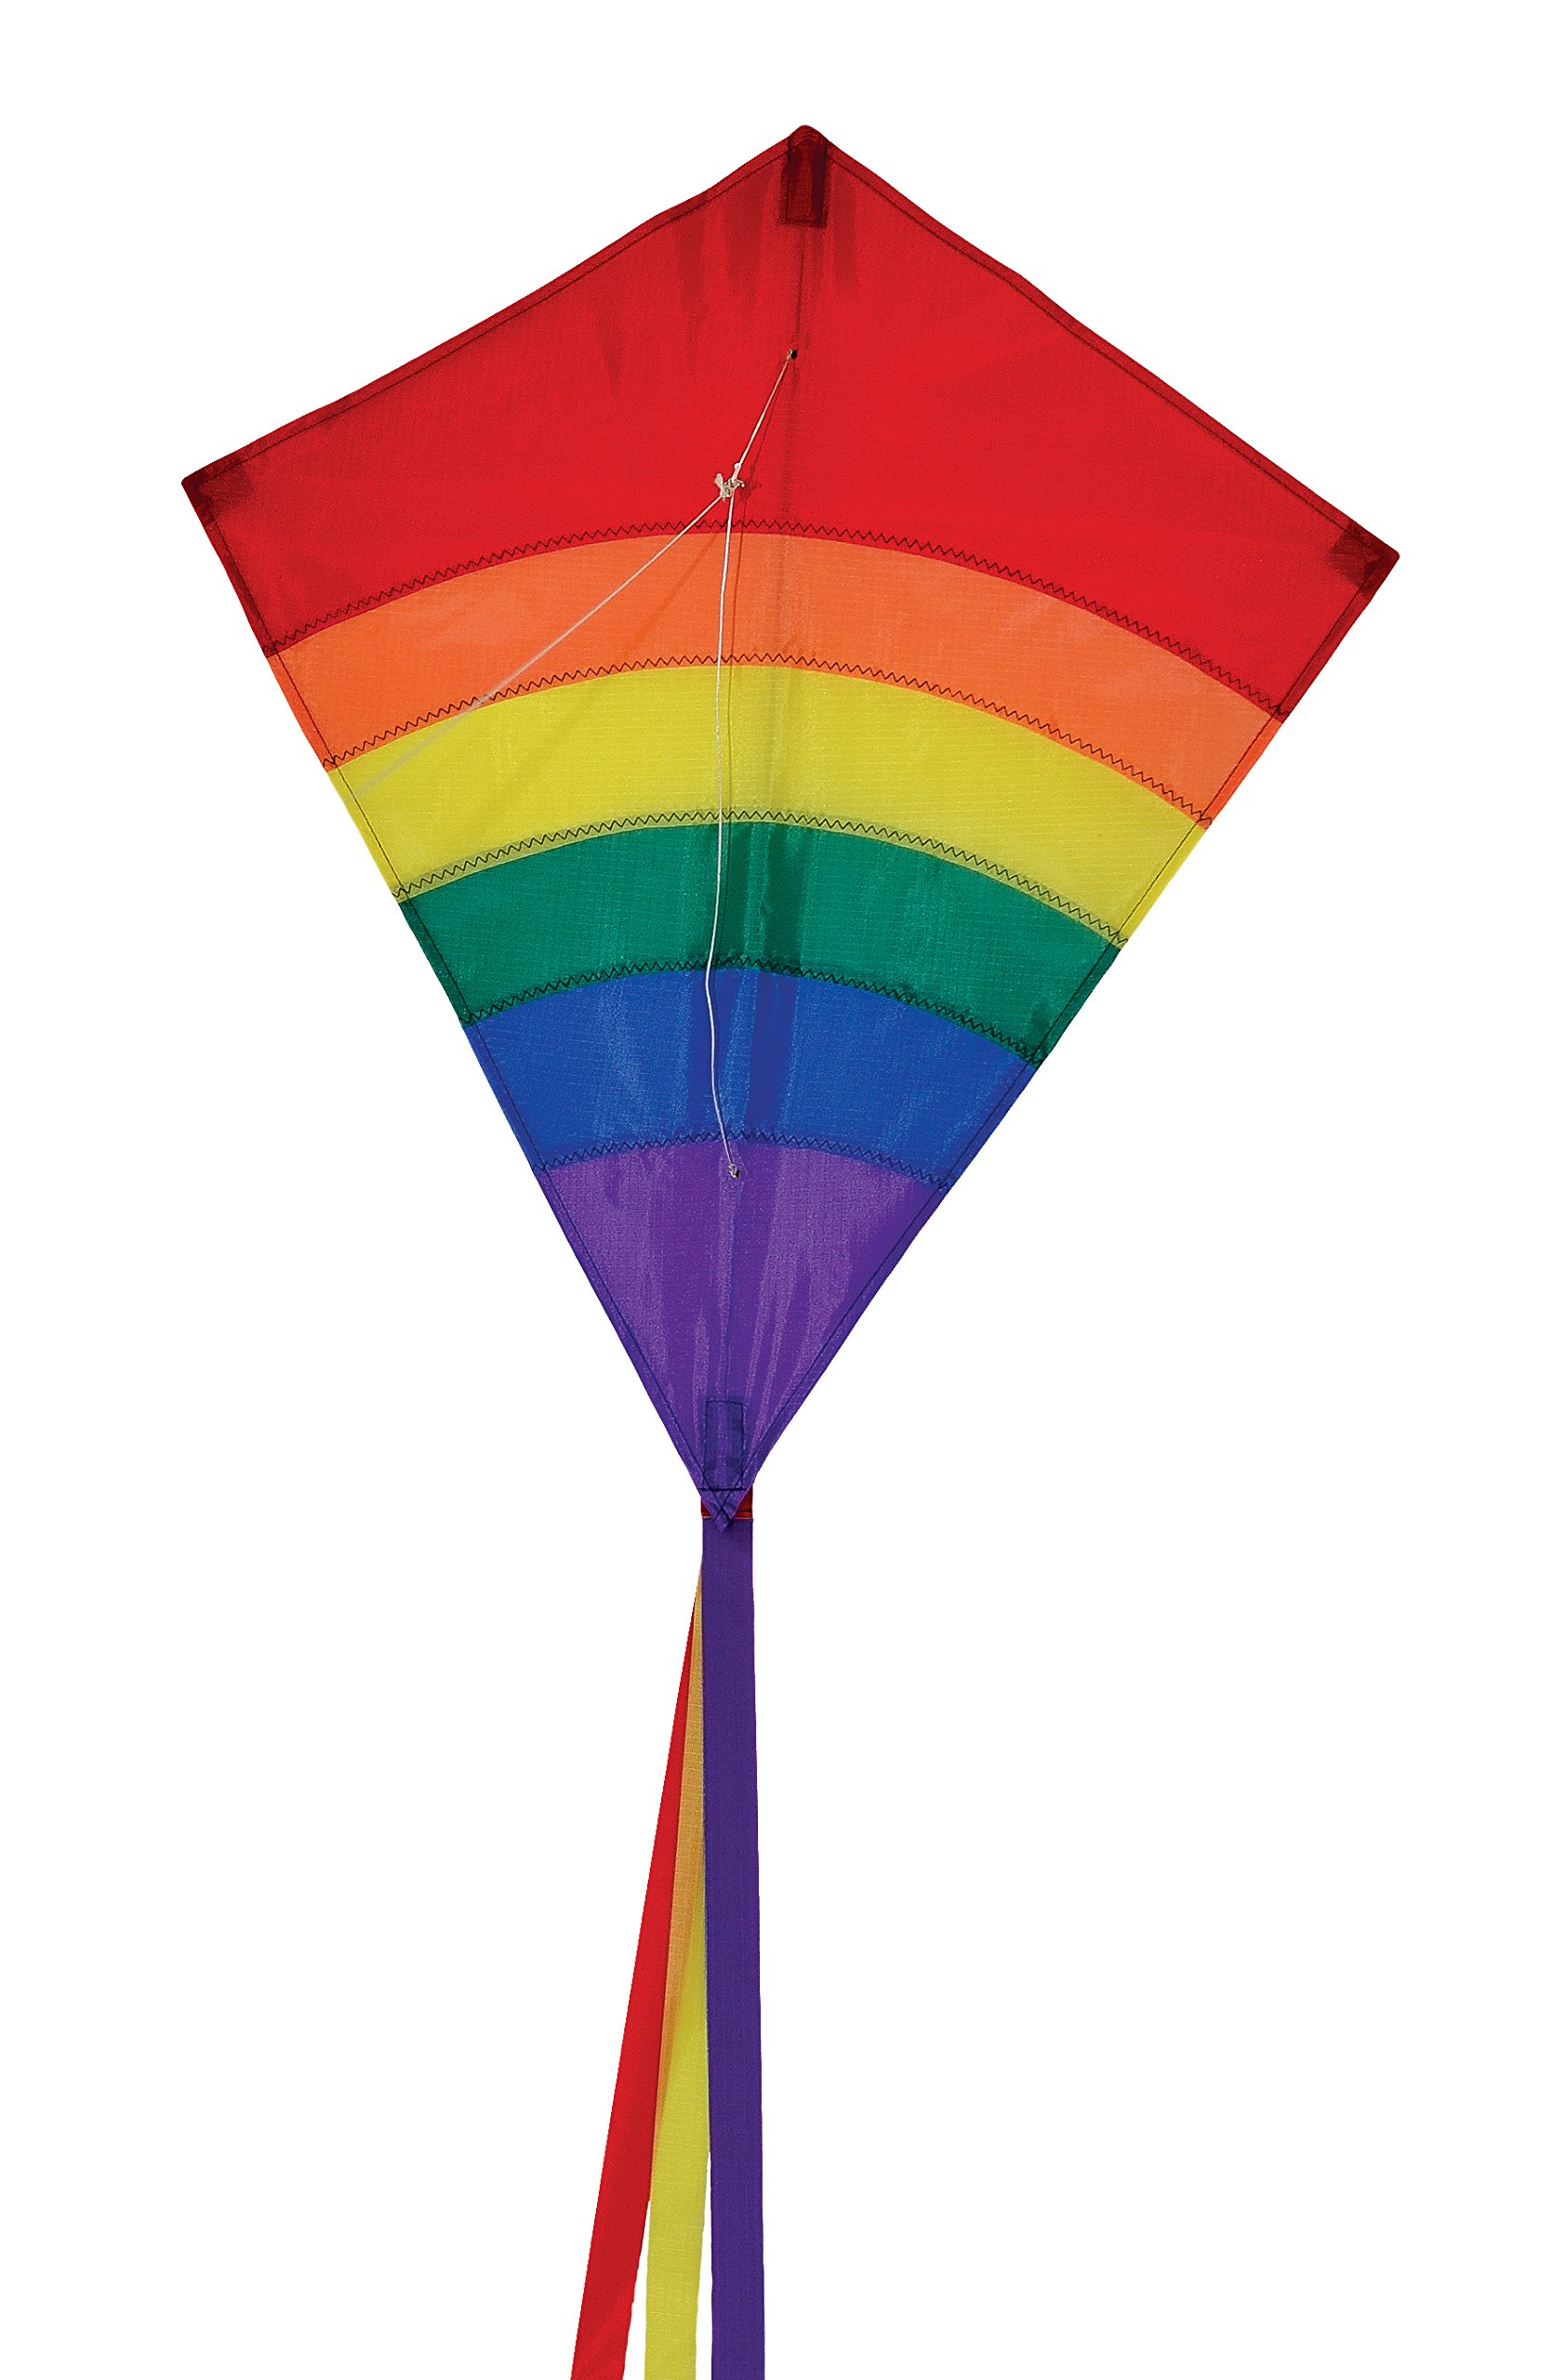 In the Breeze Rainbow 27 Inch Diamond Kite - Single Line - Ripstop Fabric - Includes Kite Line and Bag - Great Beginner Kite